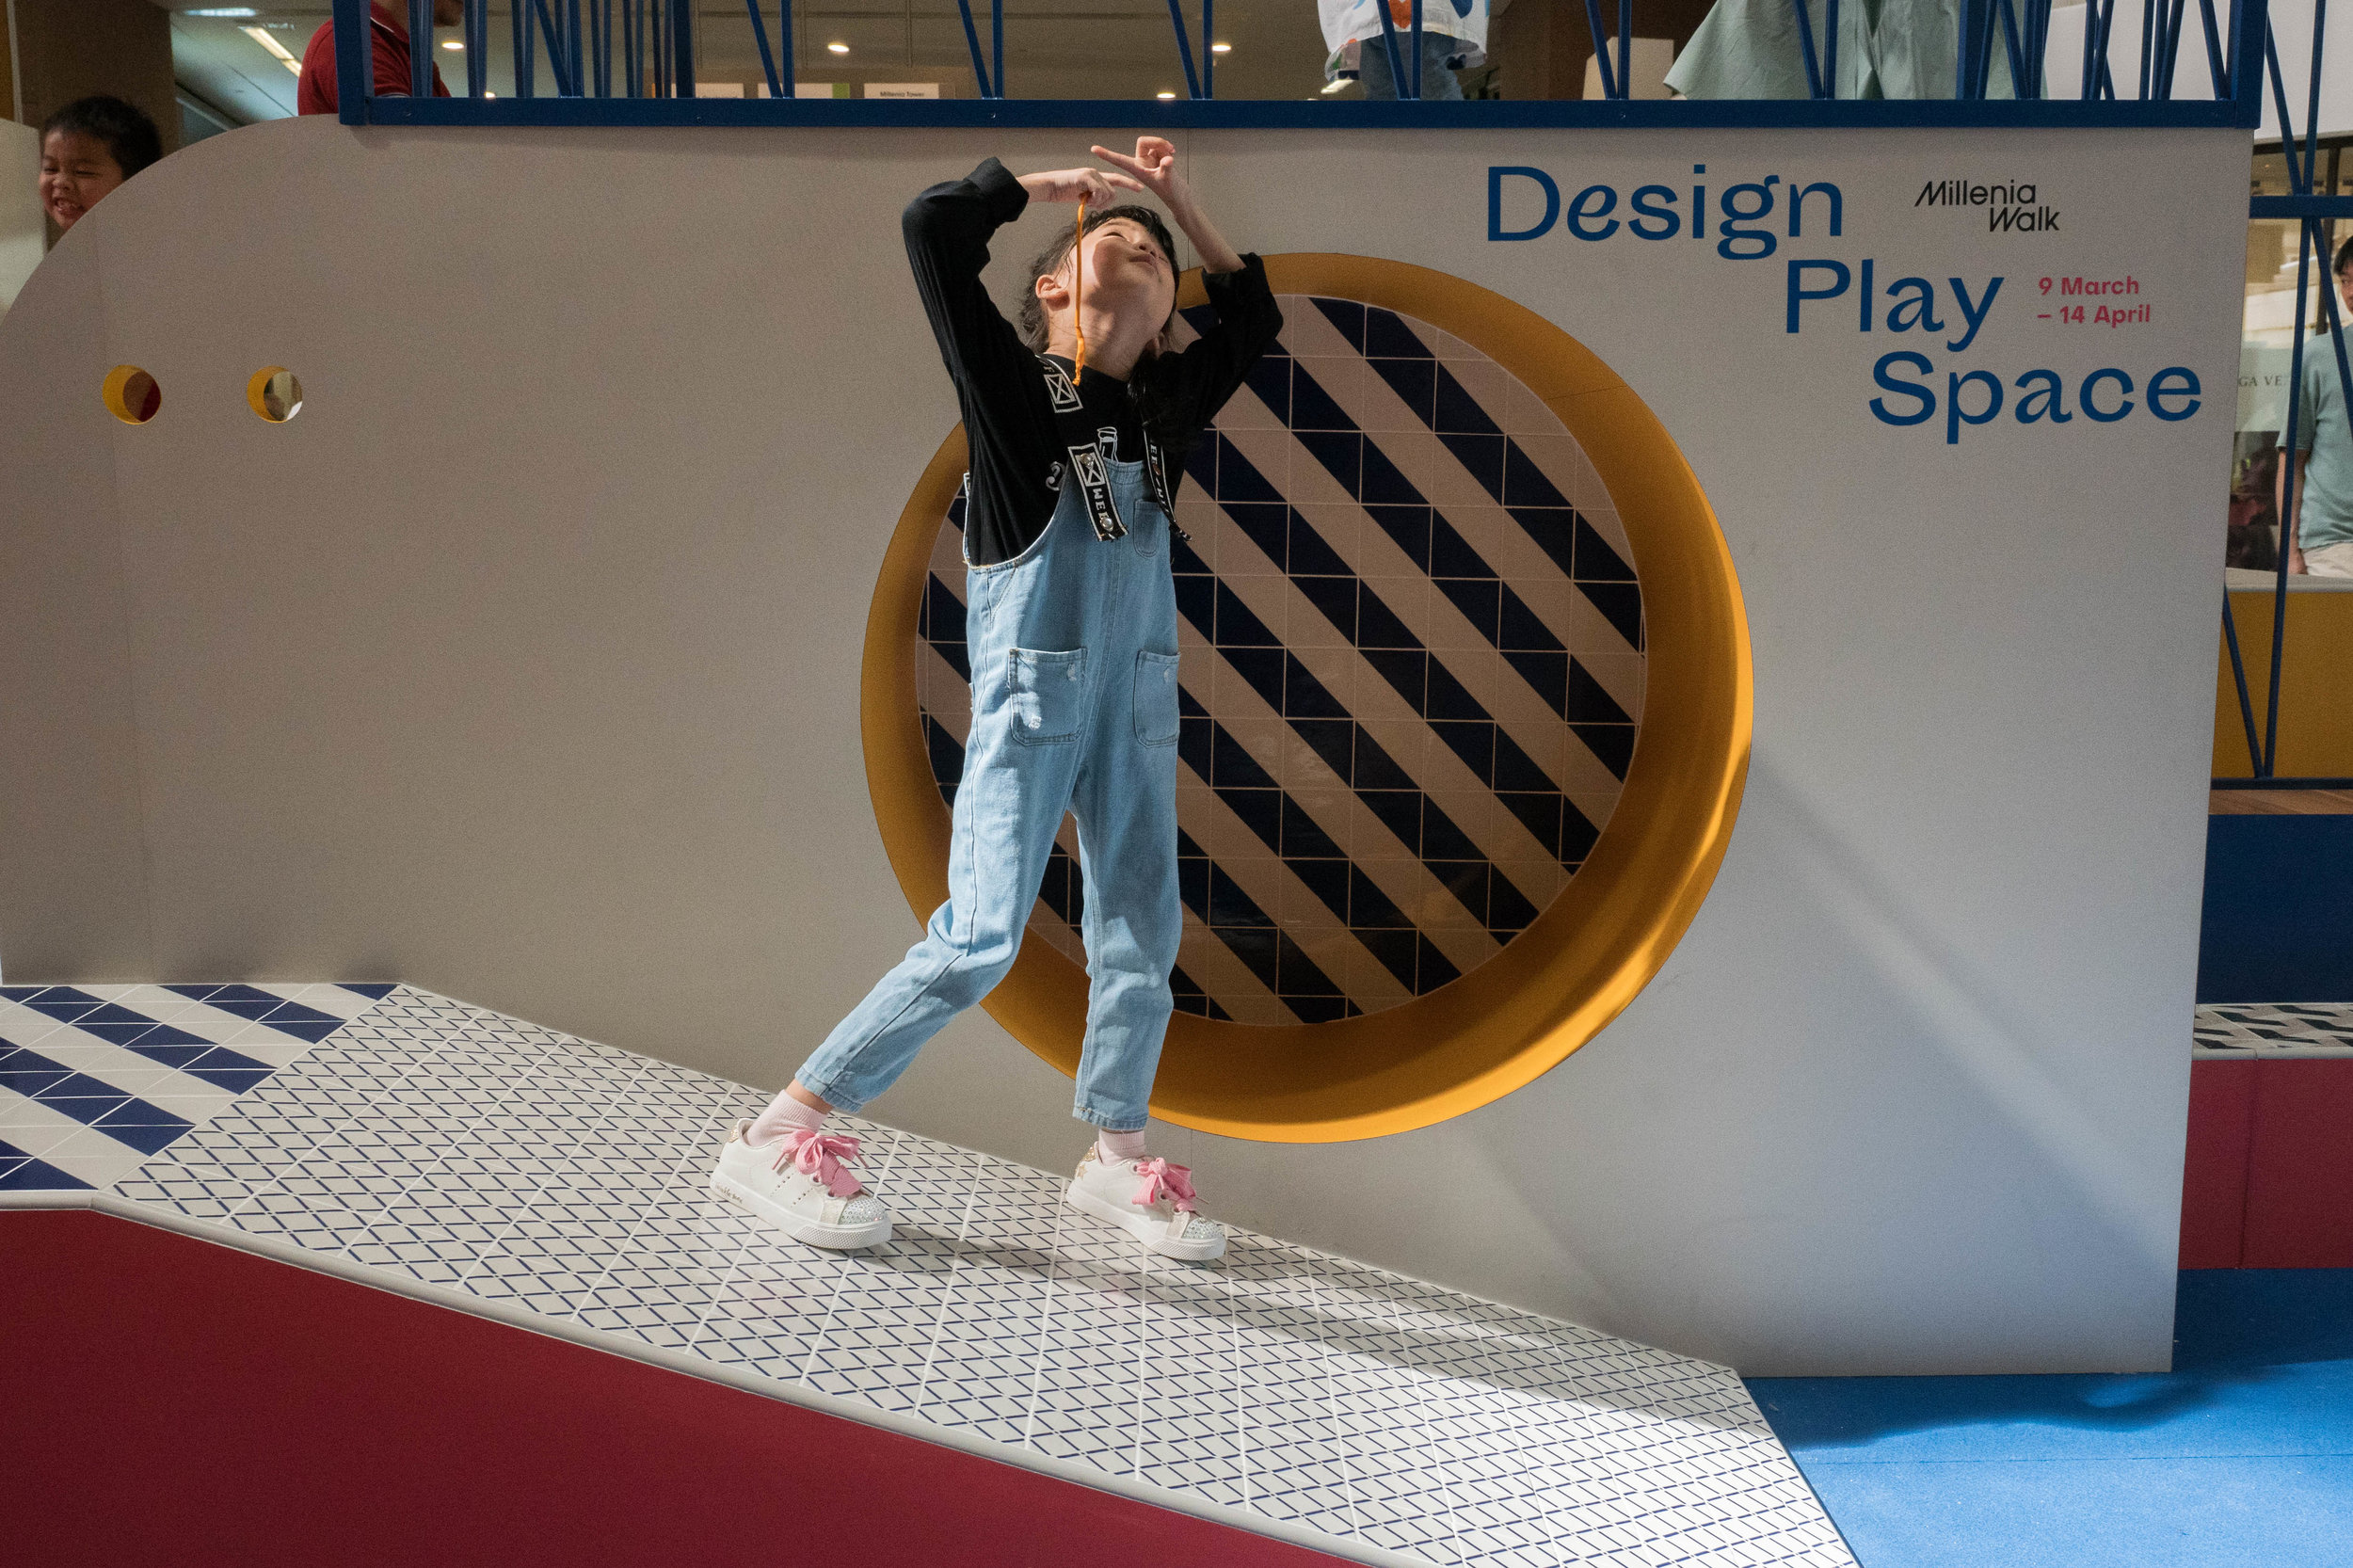 outeredit - millenia walk design play space - girl